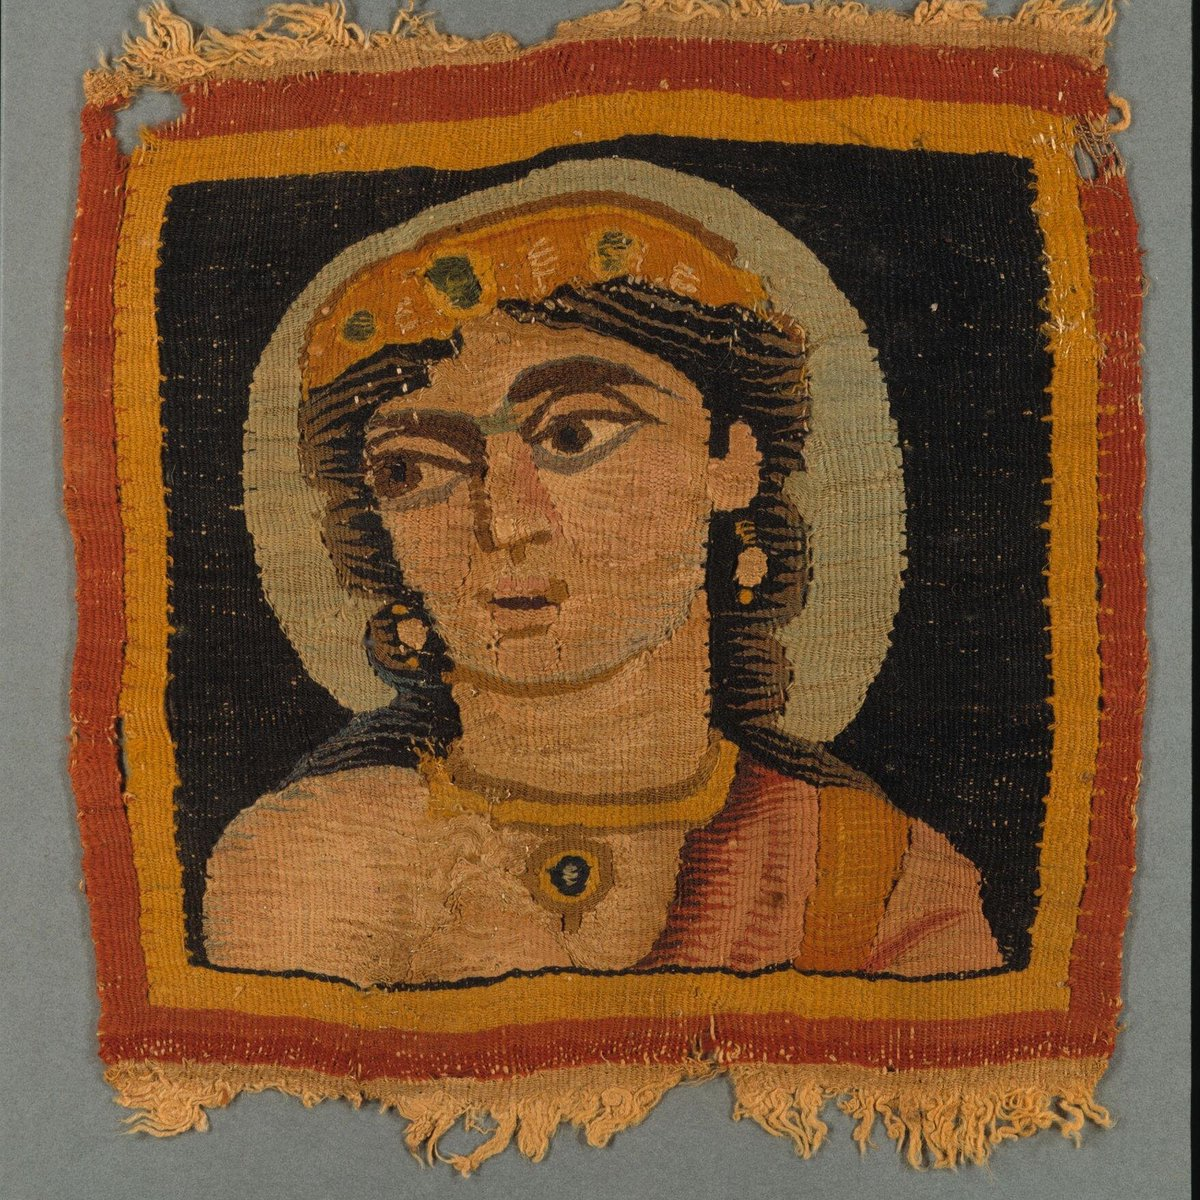 ©Victoria & Albert Museum, London - Square panel with portrait bust, almost certainly Aphrodite (Venus), appliqué from a tunic or more likely a furnishing textile. Wool with small quantities of linen, tapestry weave.  The woman is wearing a jewelled diadem, earrings and necklace with pendant. She wears a red garment over the left shoulder, and has a pale green halo. Plain red and yellow border.